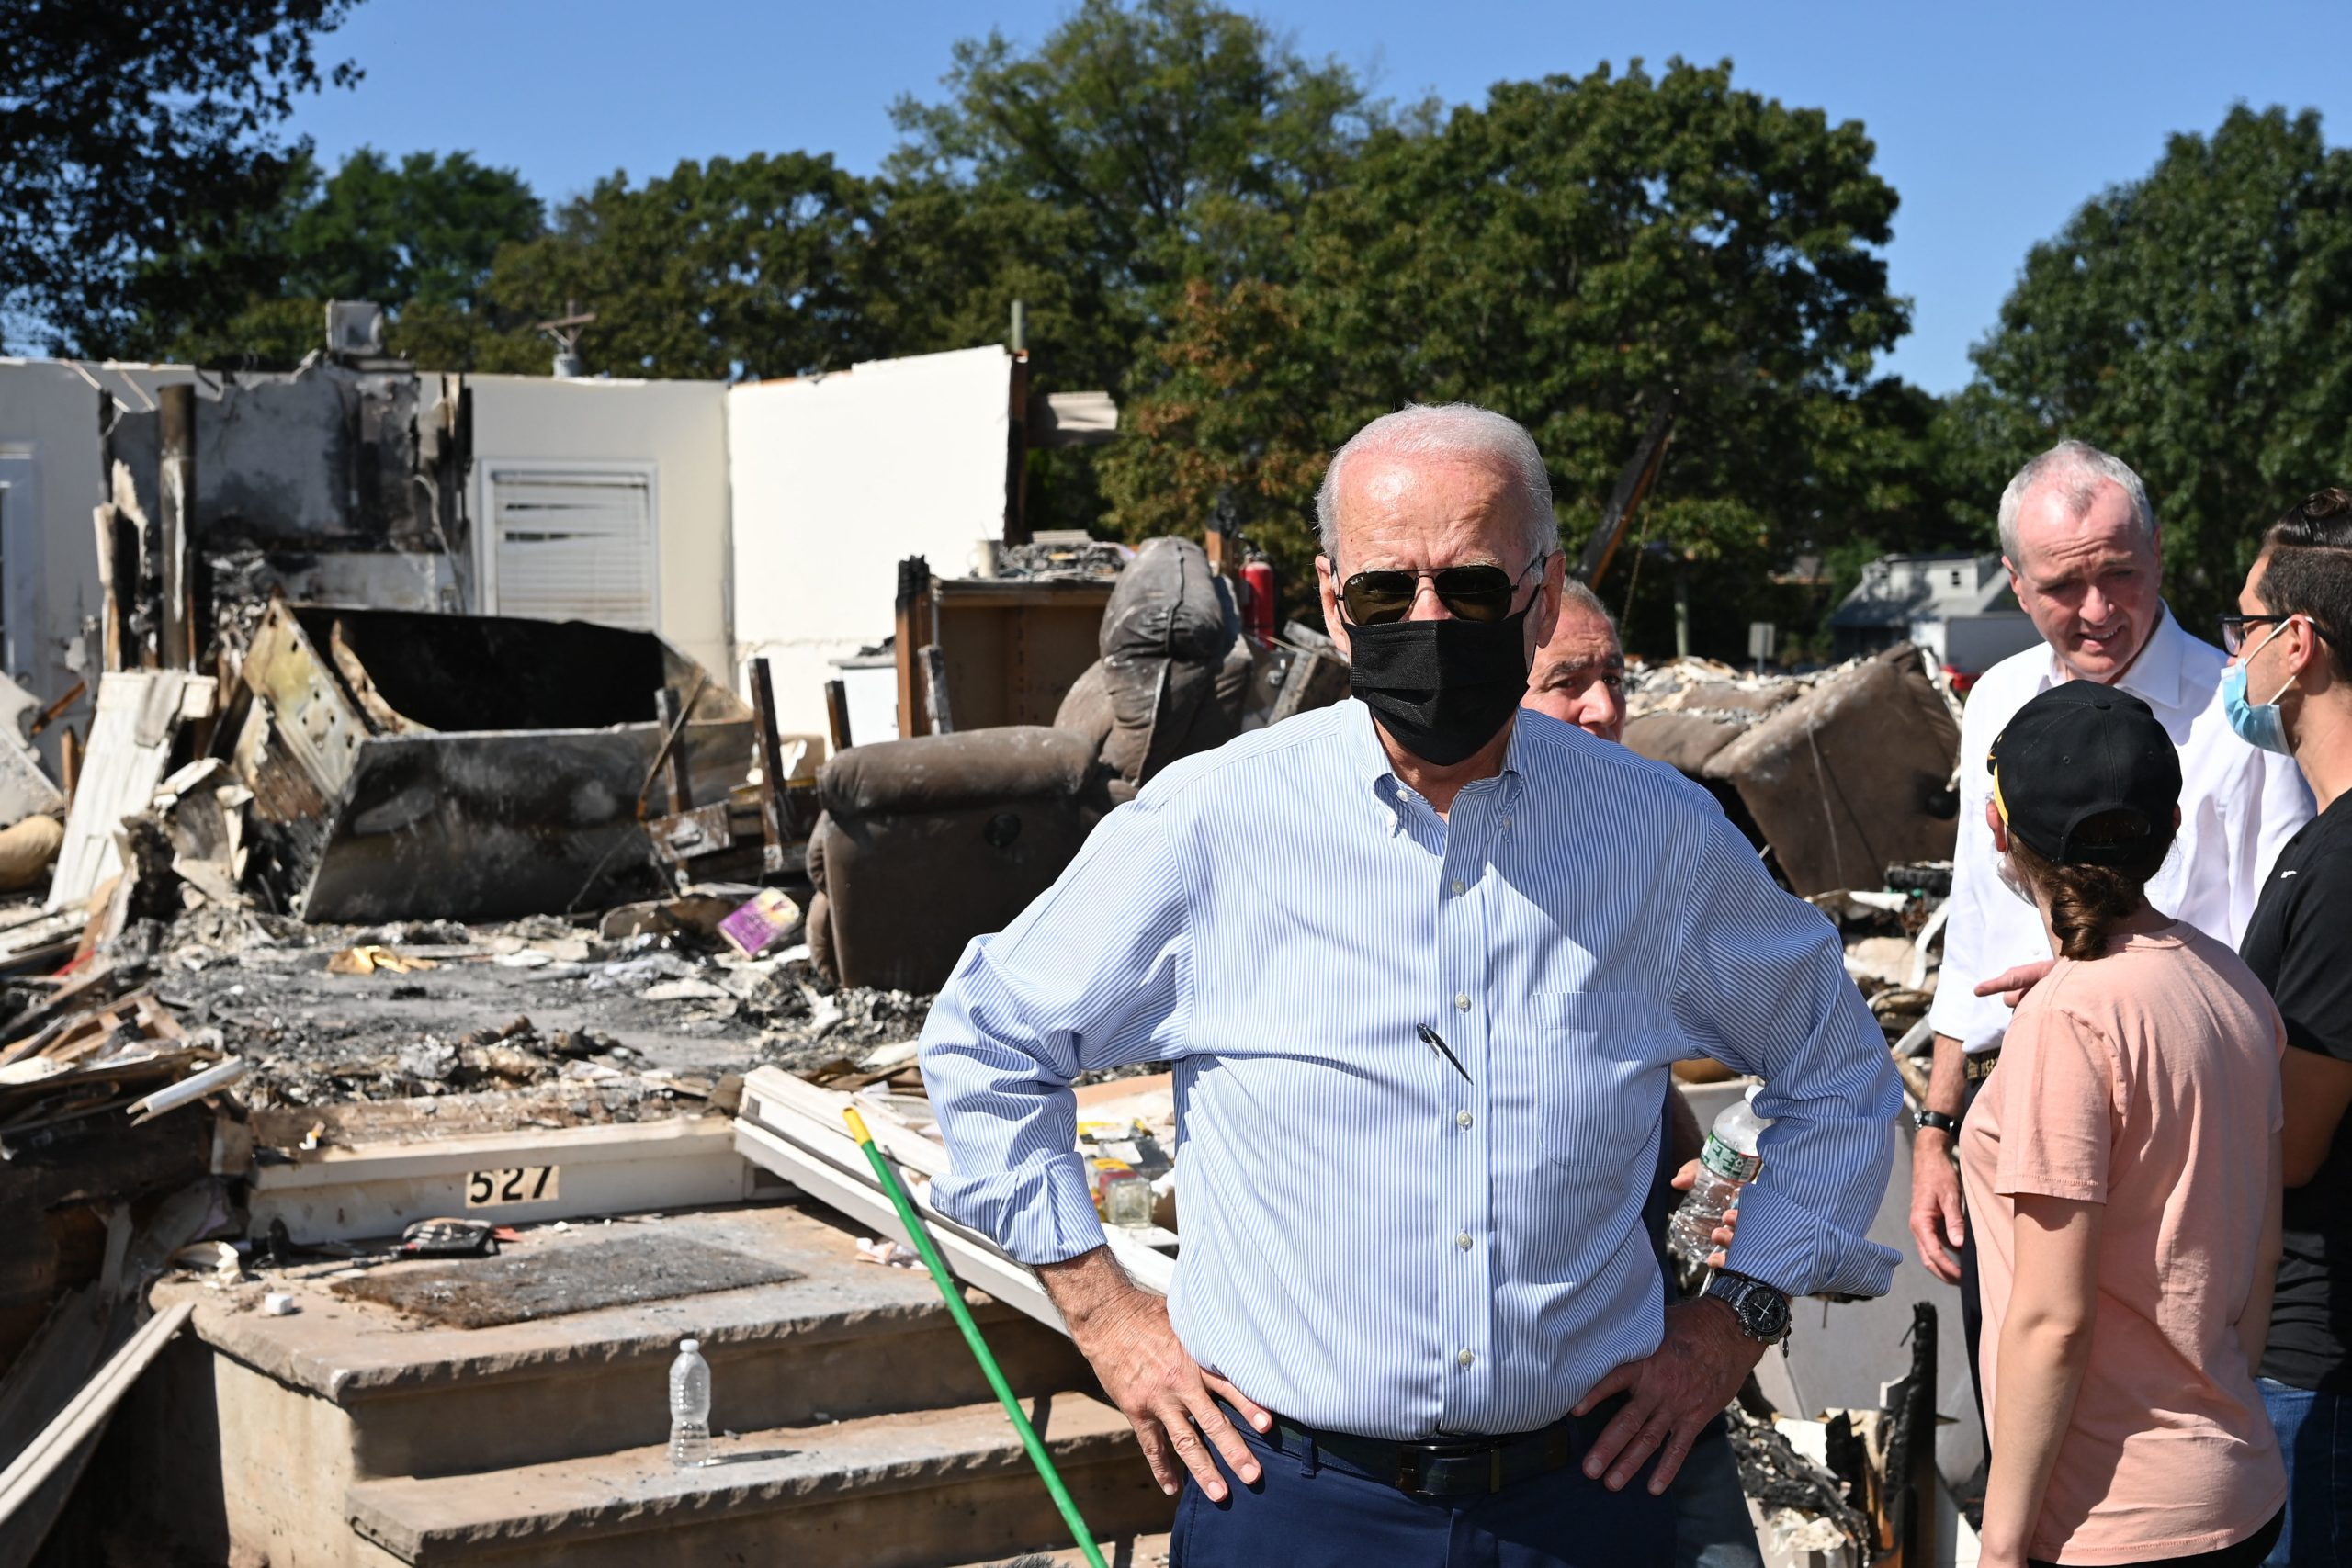 US President Joe Biden(C) tours a neighbourhood affected by Hurricane Ida in Manville, New Jersey on September 7, 2021. - President Joe Biden headed Tuesday to storm-ravaged New York and New Jersey, just days after inspecting the damage caused by Hurricane Ida in Louisiana. Biden -- who is pushing a giant infrastructure spending bill, including major funding for the green economy -- argues that extreme weather across the United States this summer is a harbinger of worse climate change to come. (Photo by MANDEL NGAN / AFP) (Photo by MANDEL NGAN/AFP via Getty Images)